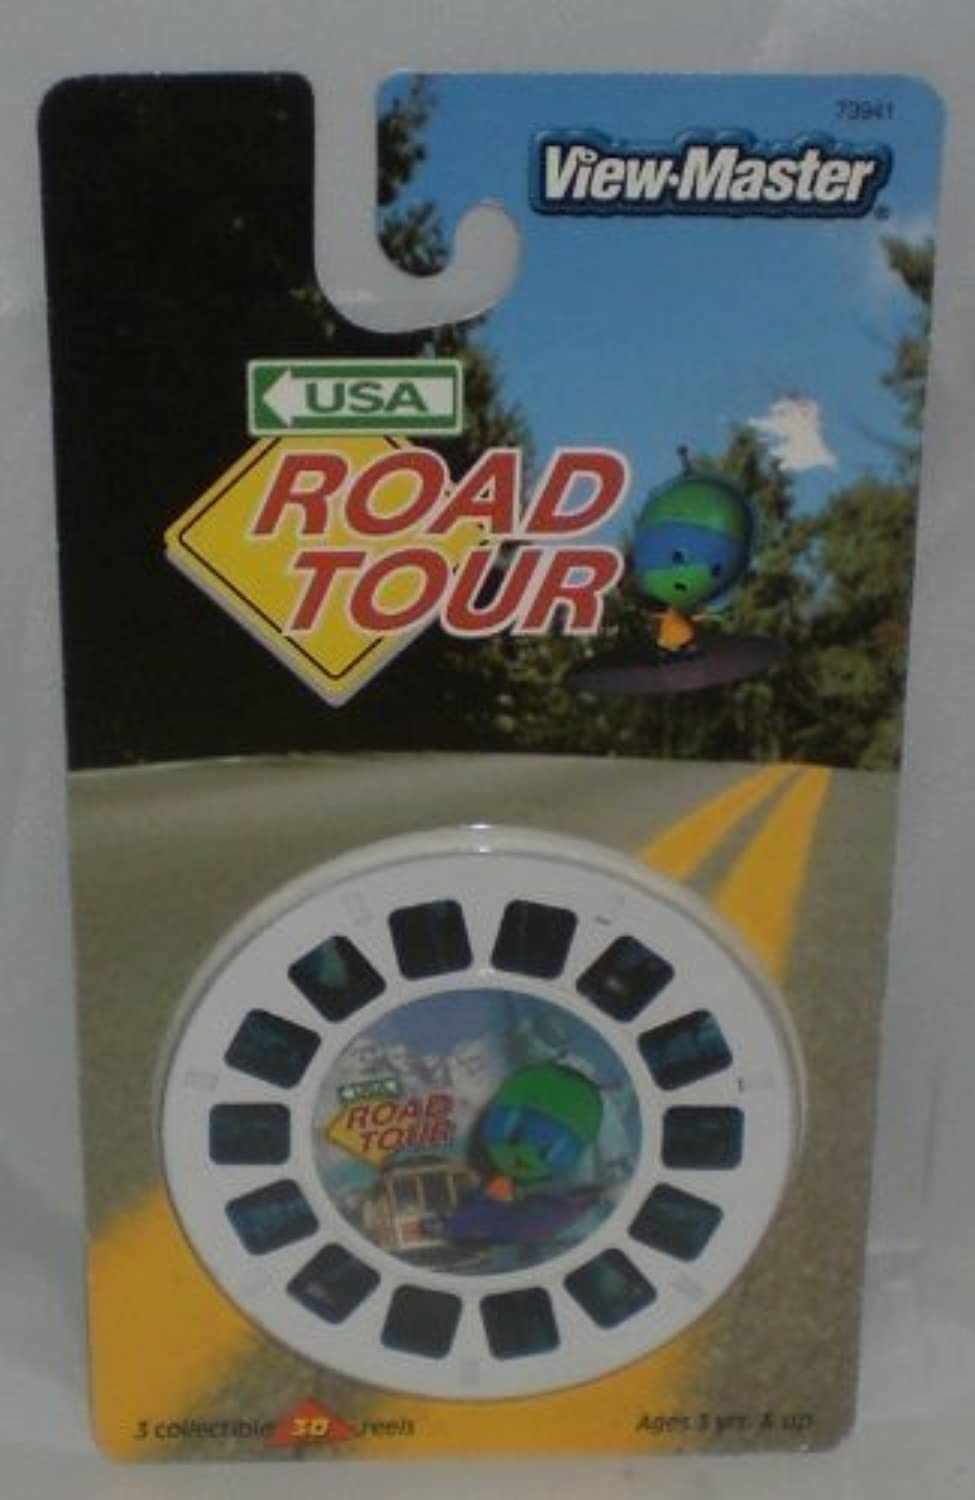 USA Road Tour View-Master 3 Reel Set - 21 3d Images by View Master B01GDPFO1A Creative | Schöne Kunst